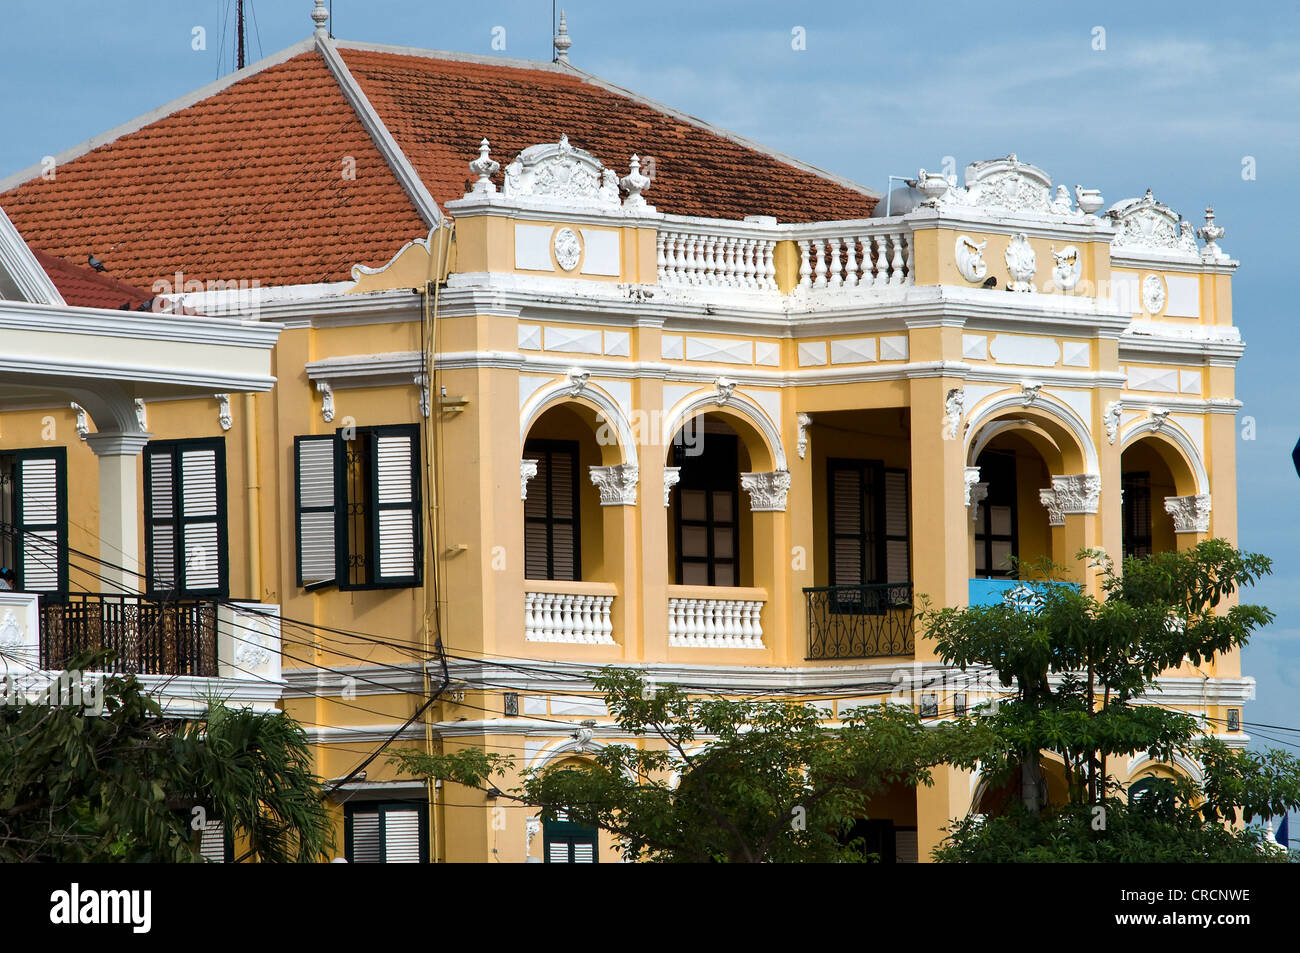 French colonial architecture phnom penh cambodia stock for Architecture khmer